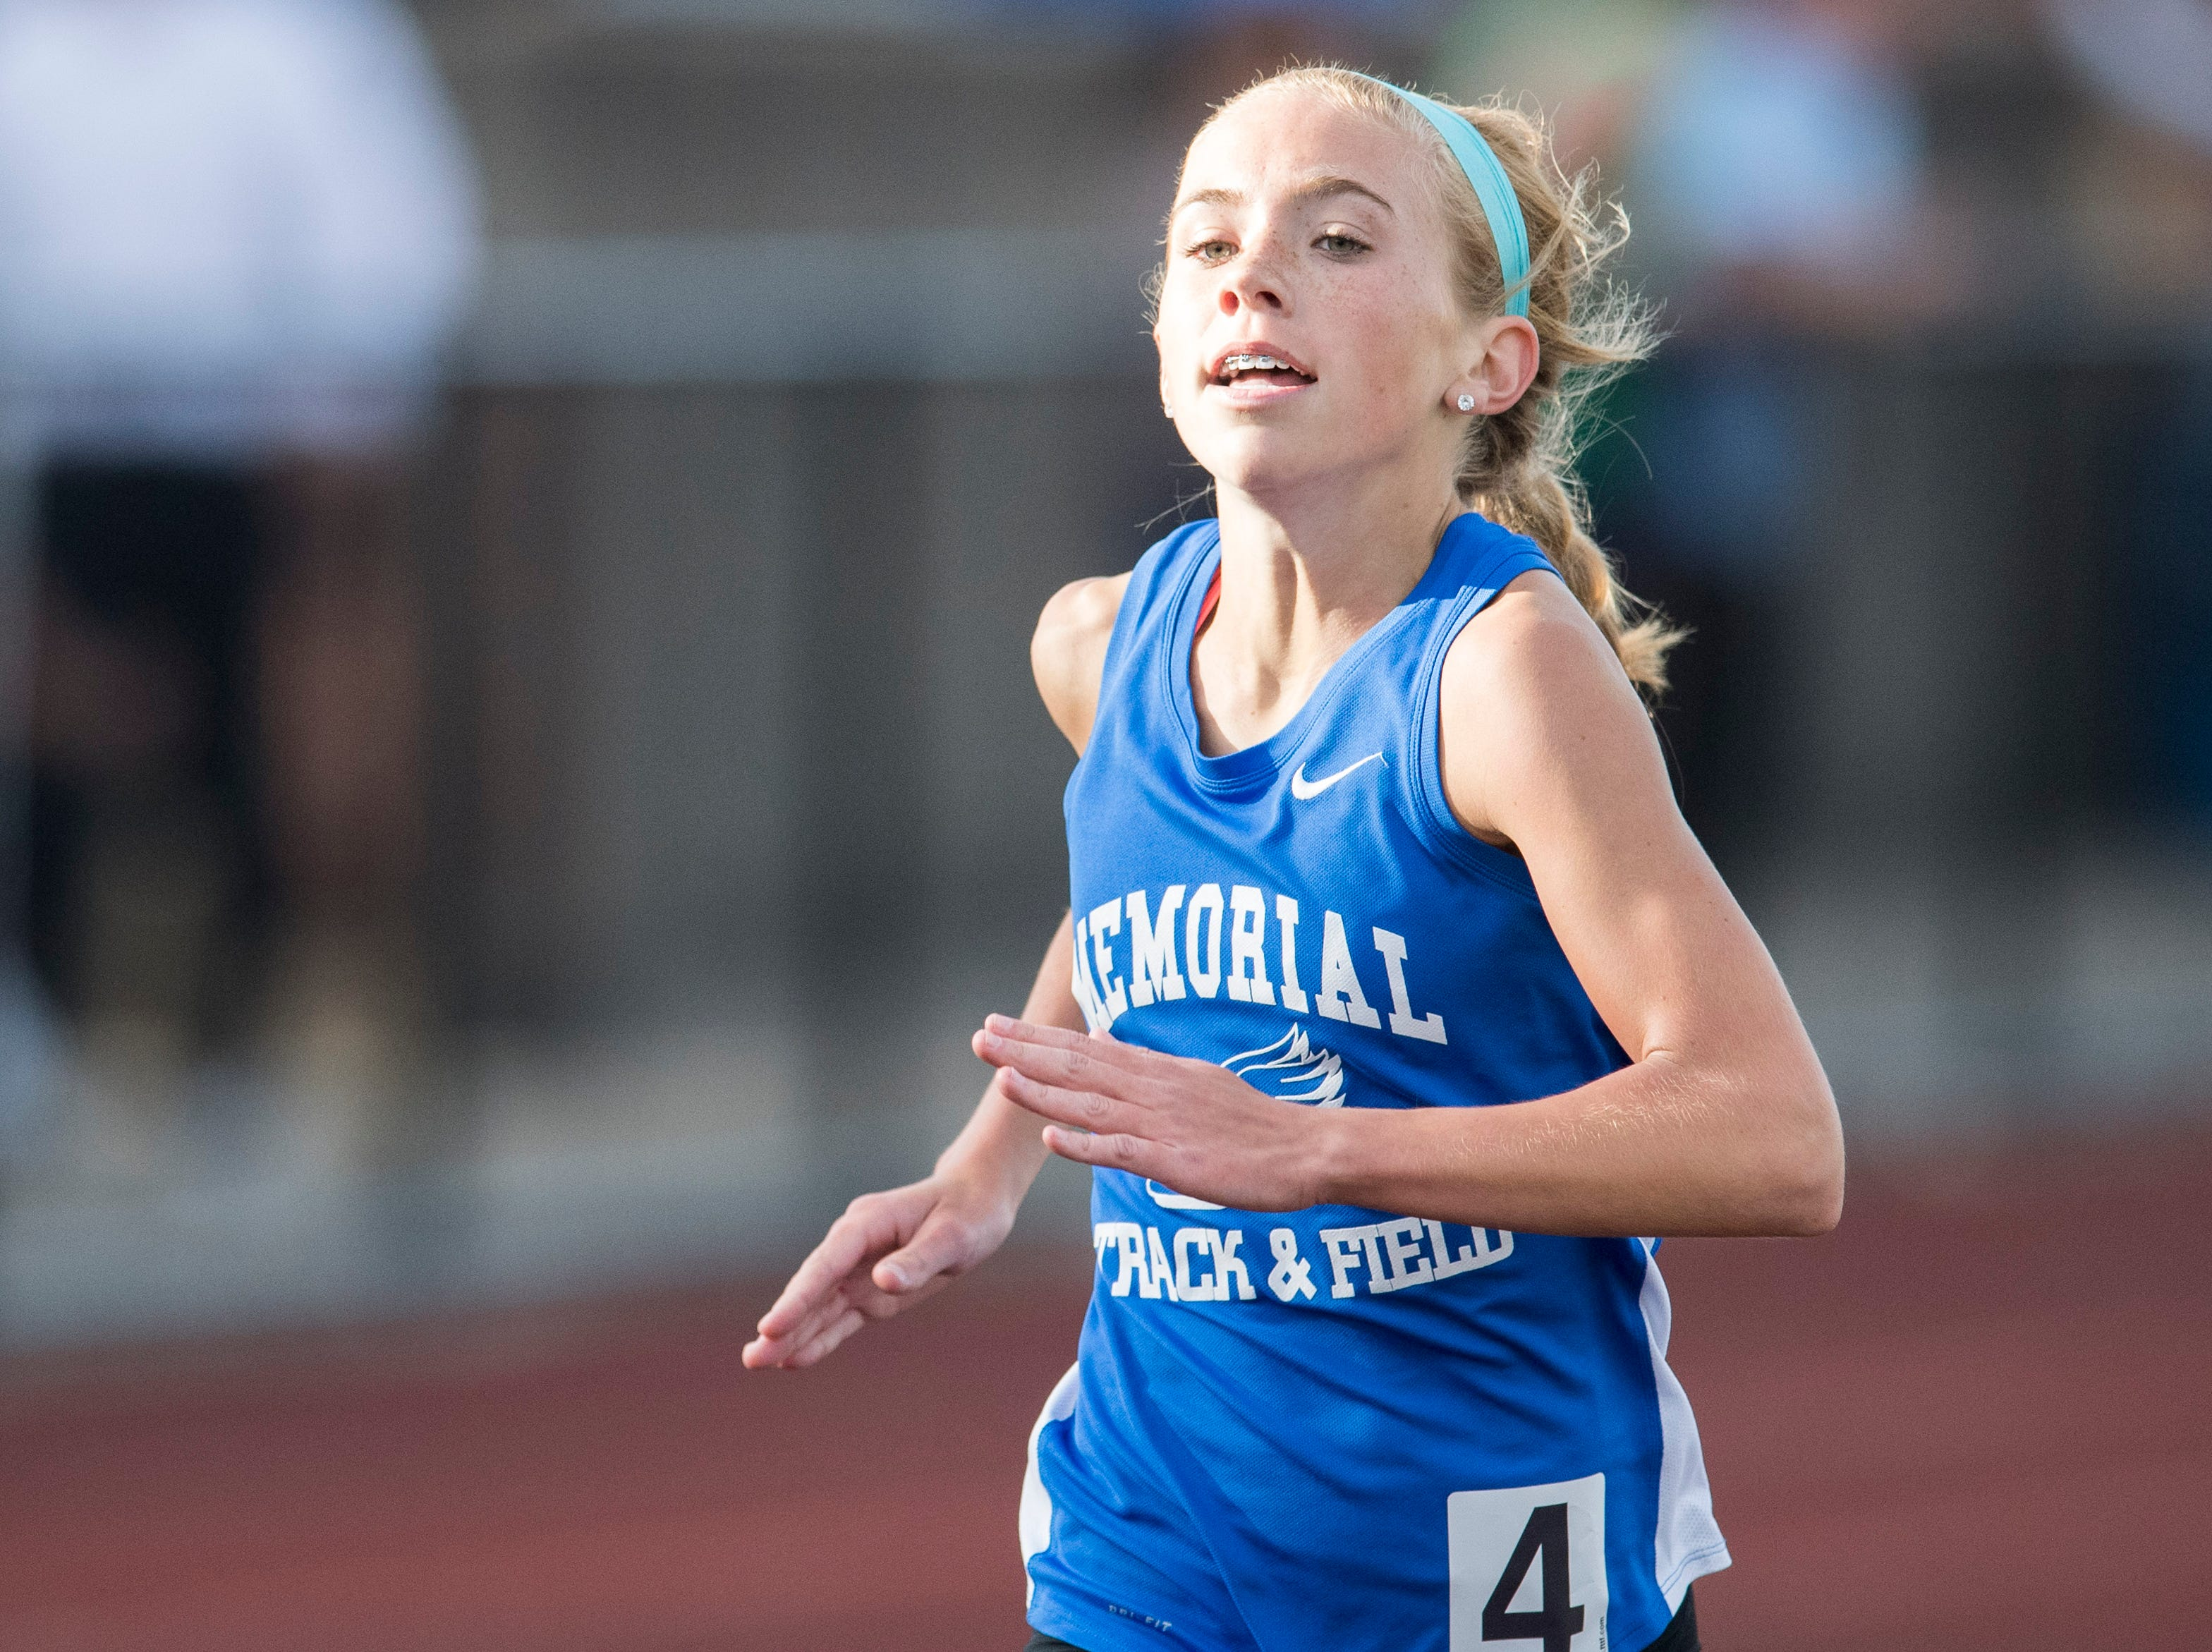 Memorial's Jacqueline Brasseale runs in the girls 1600m run event  during the 2019 City Track and Field meet at Central High School Friday, April 12, 2019.  Brasseale placed first in the event at five minutes and 18.21 seconds